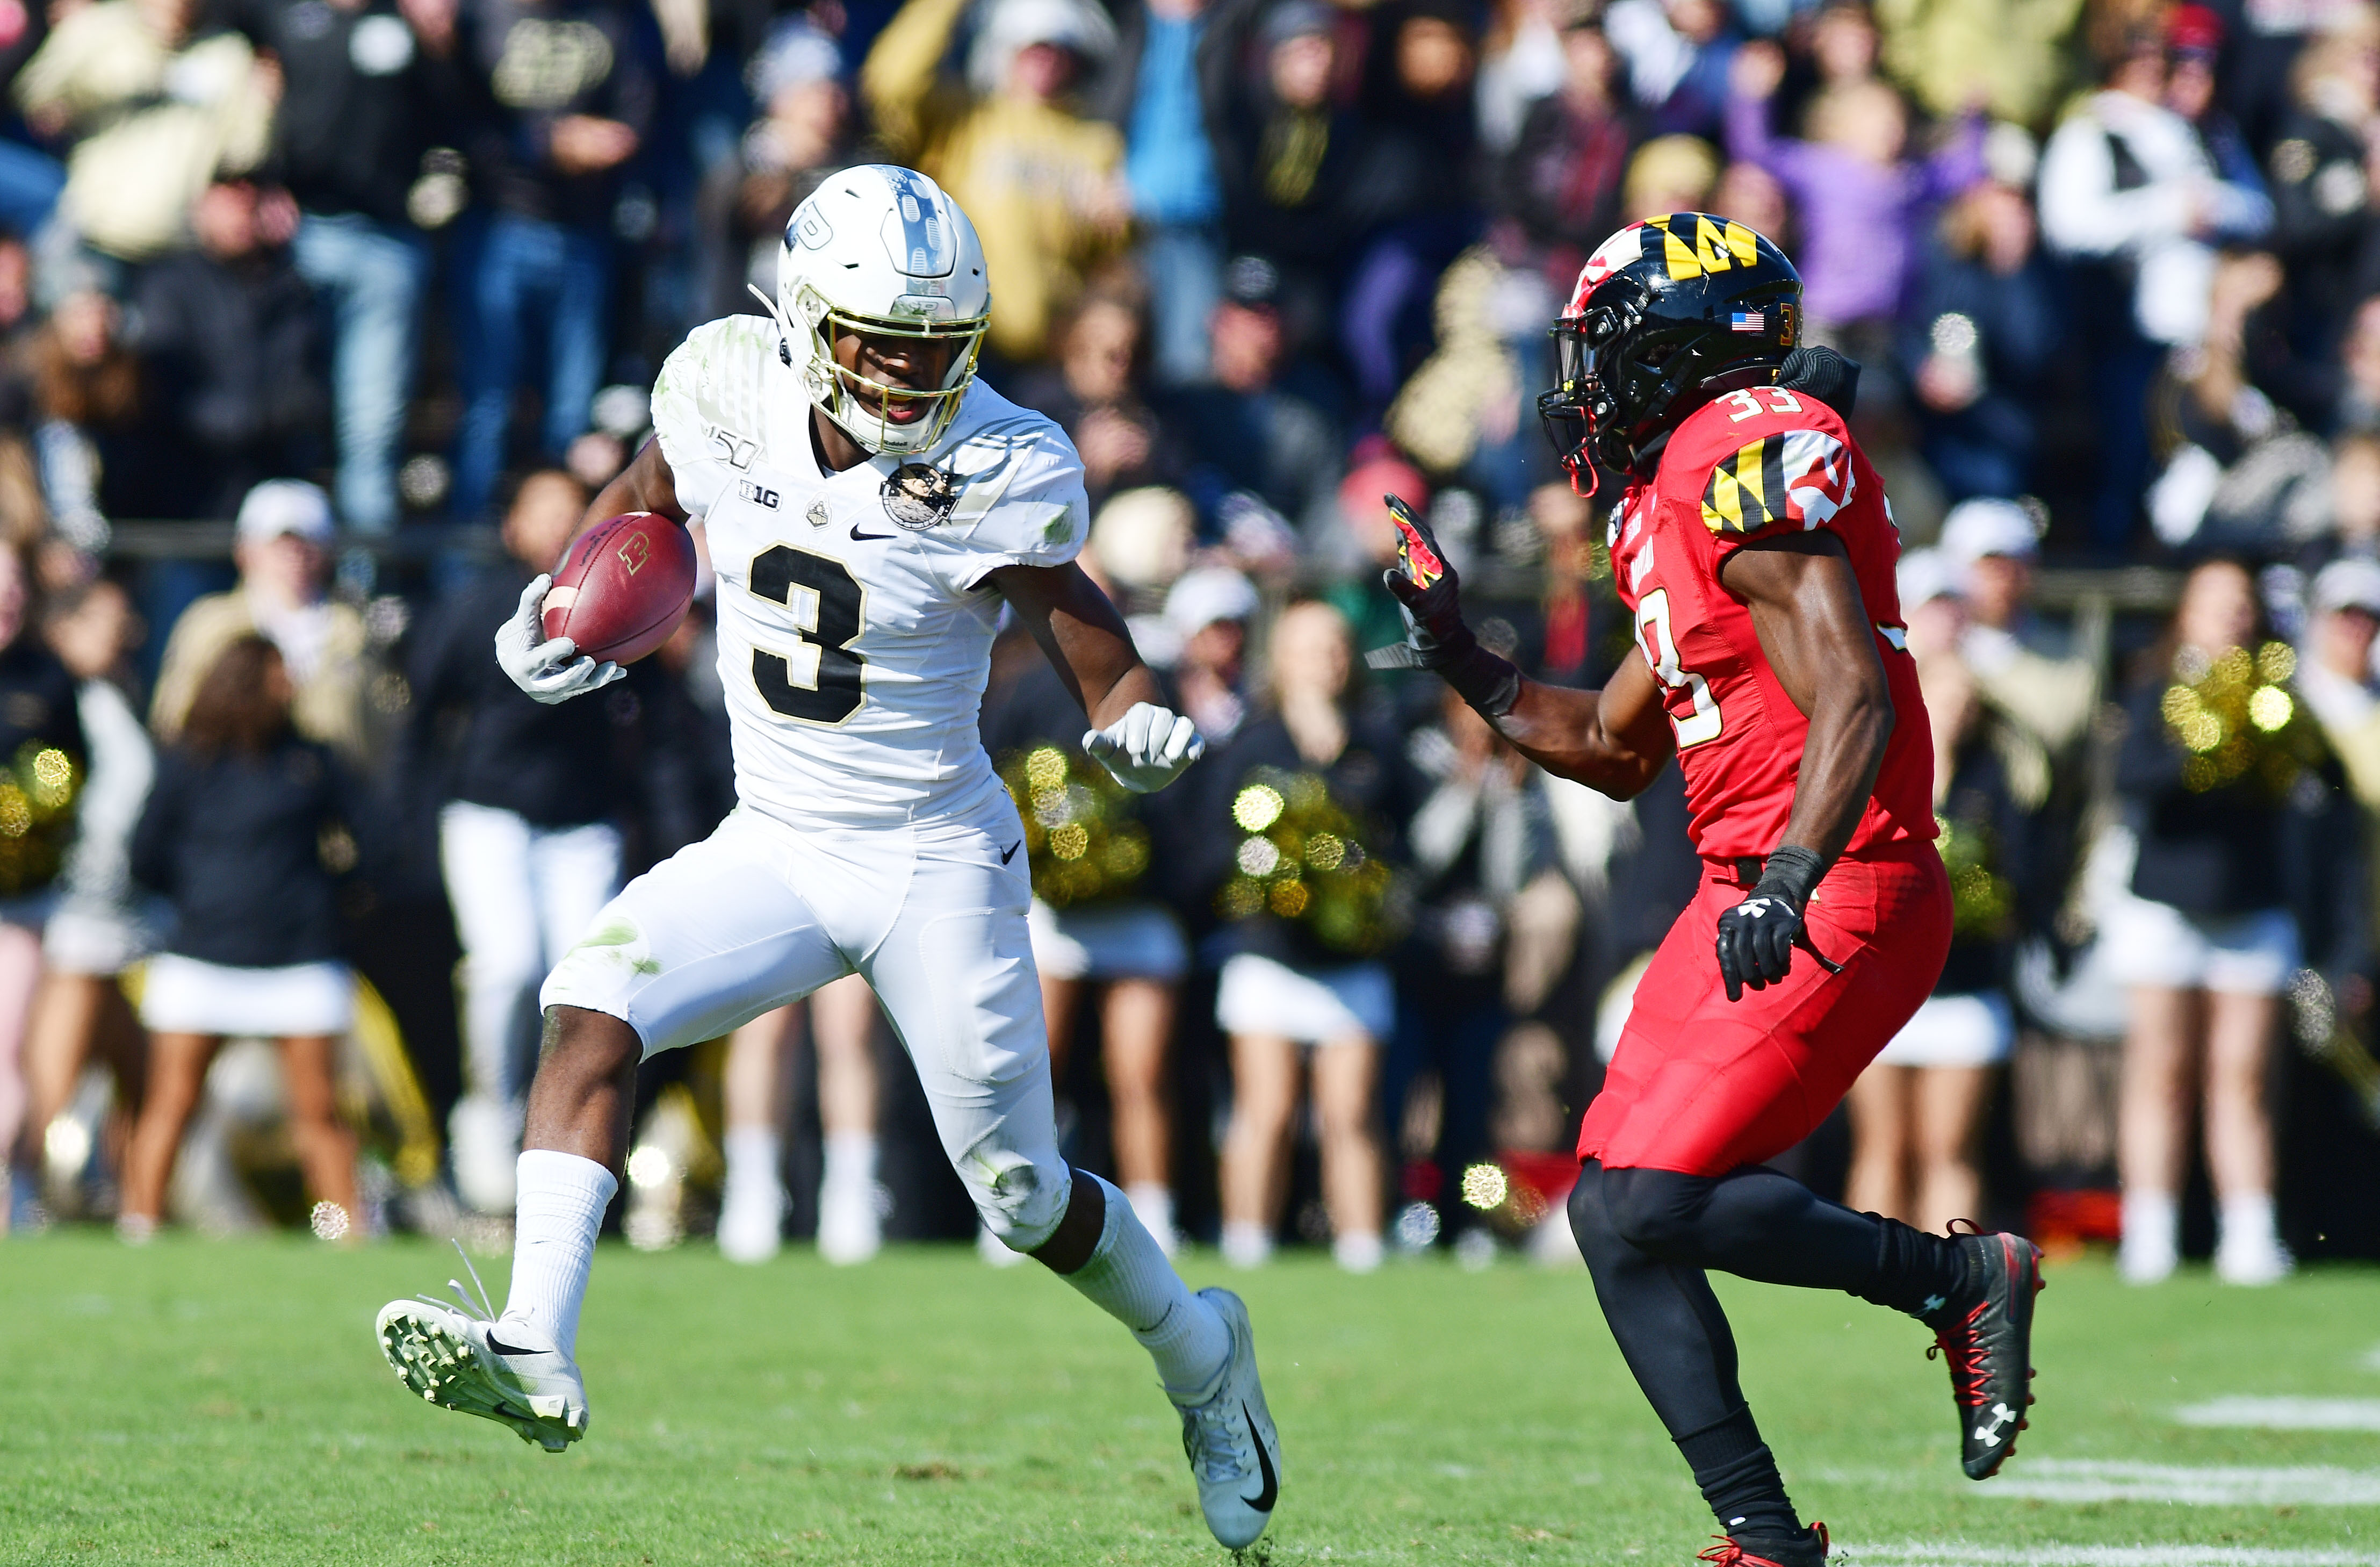 NCAA Football: Maryland at Purdue